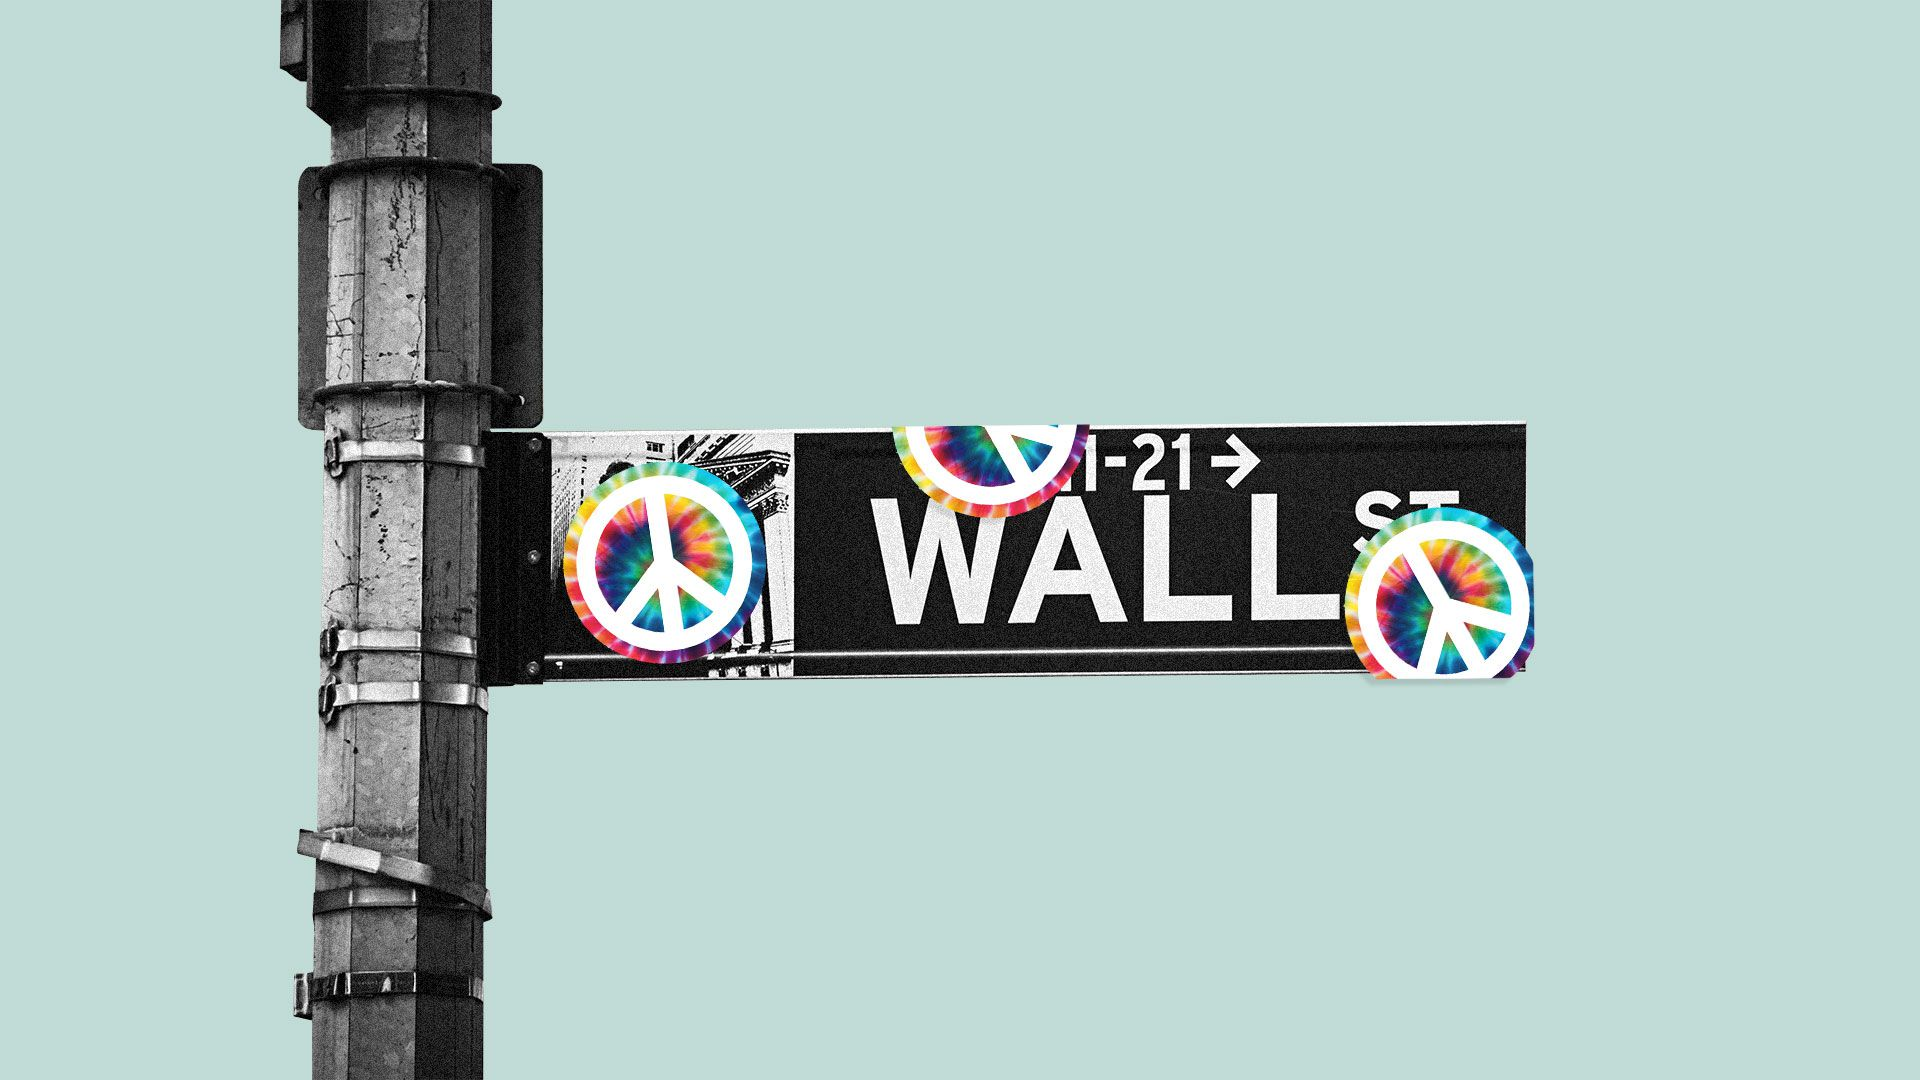 Illustration of the Wall Street sign with peace sign stickers all over it.